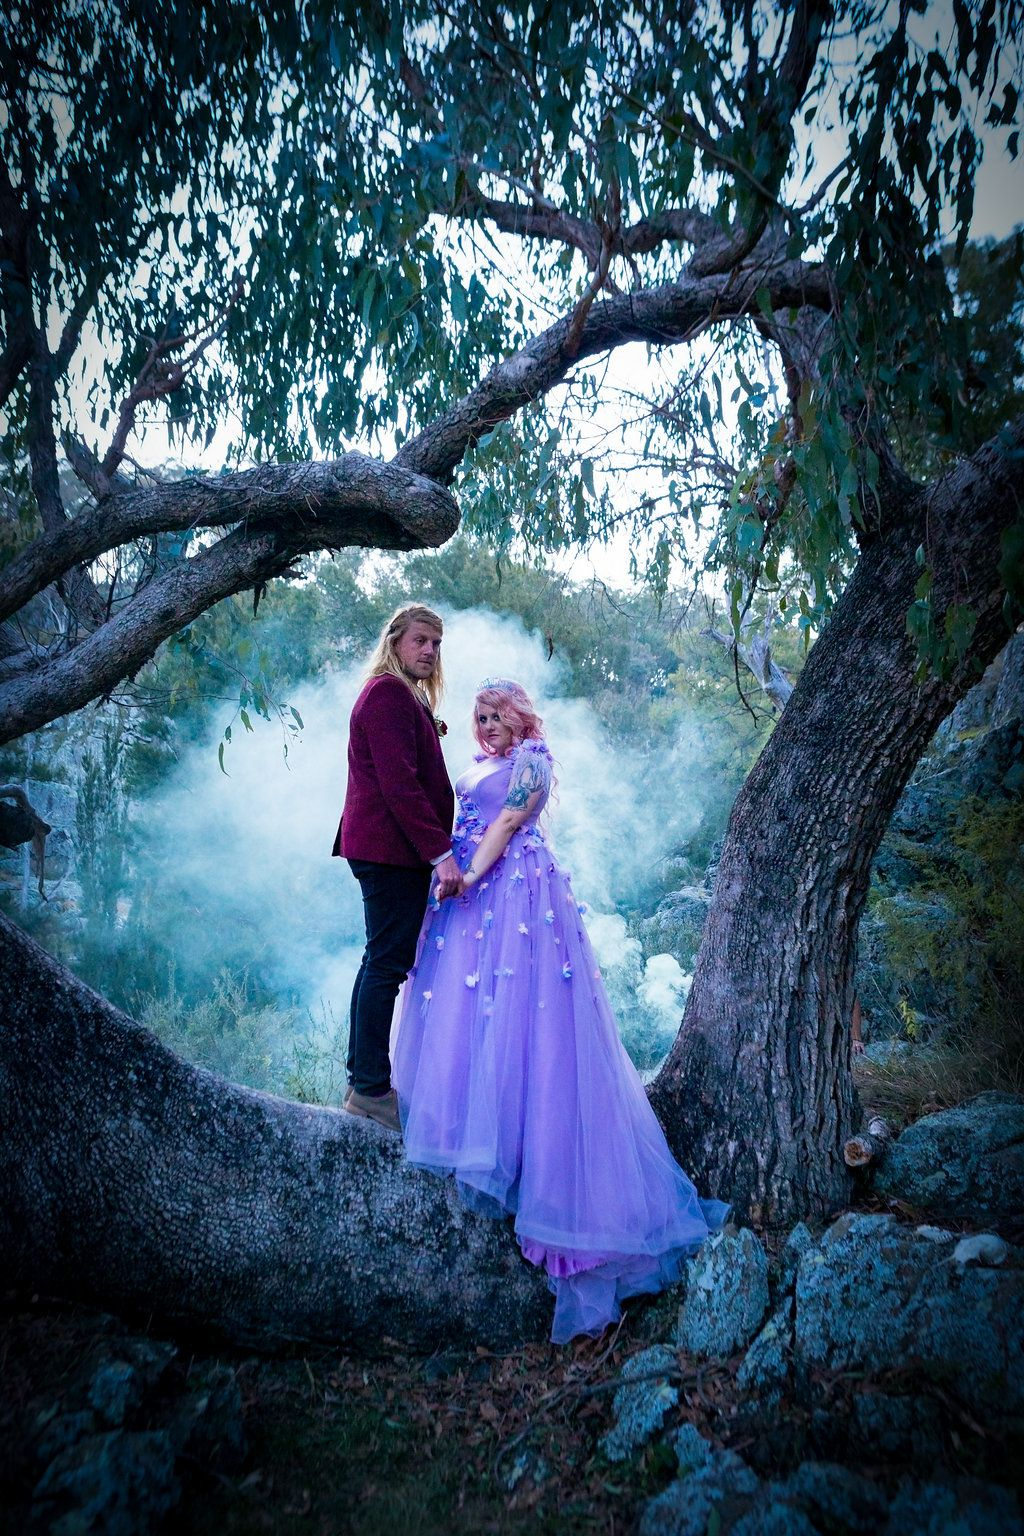 Pastel Goth Unicorn Wedding For 1500 Purple Floral Dress: Pastel Goth Wedding Dresses At Reisefeber.org